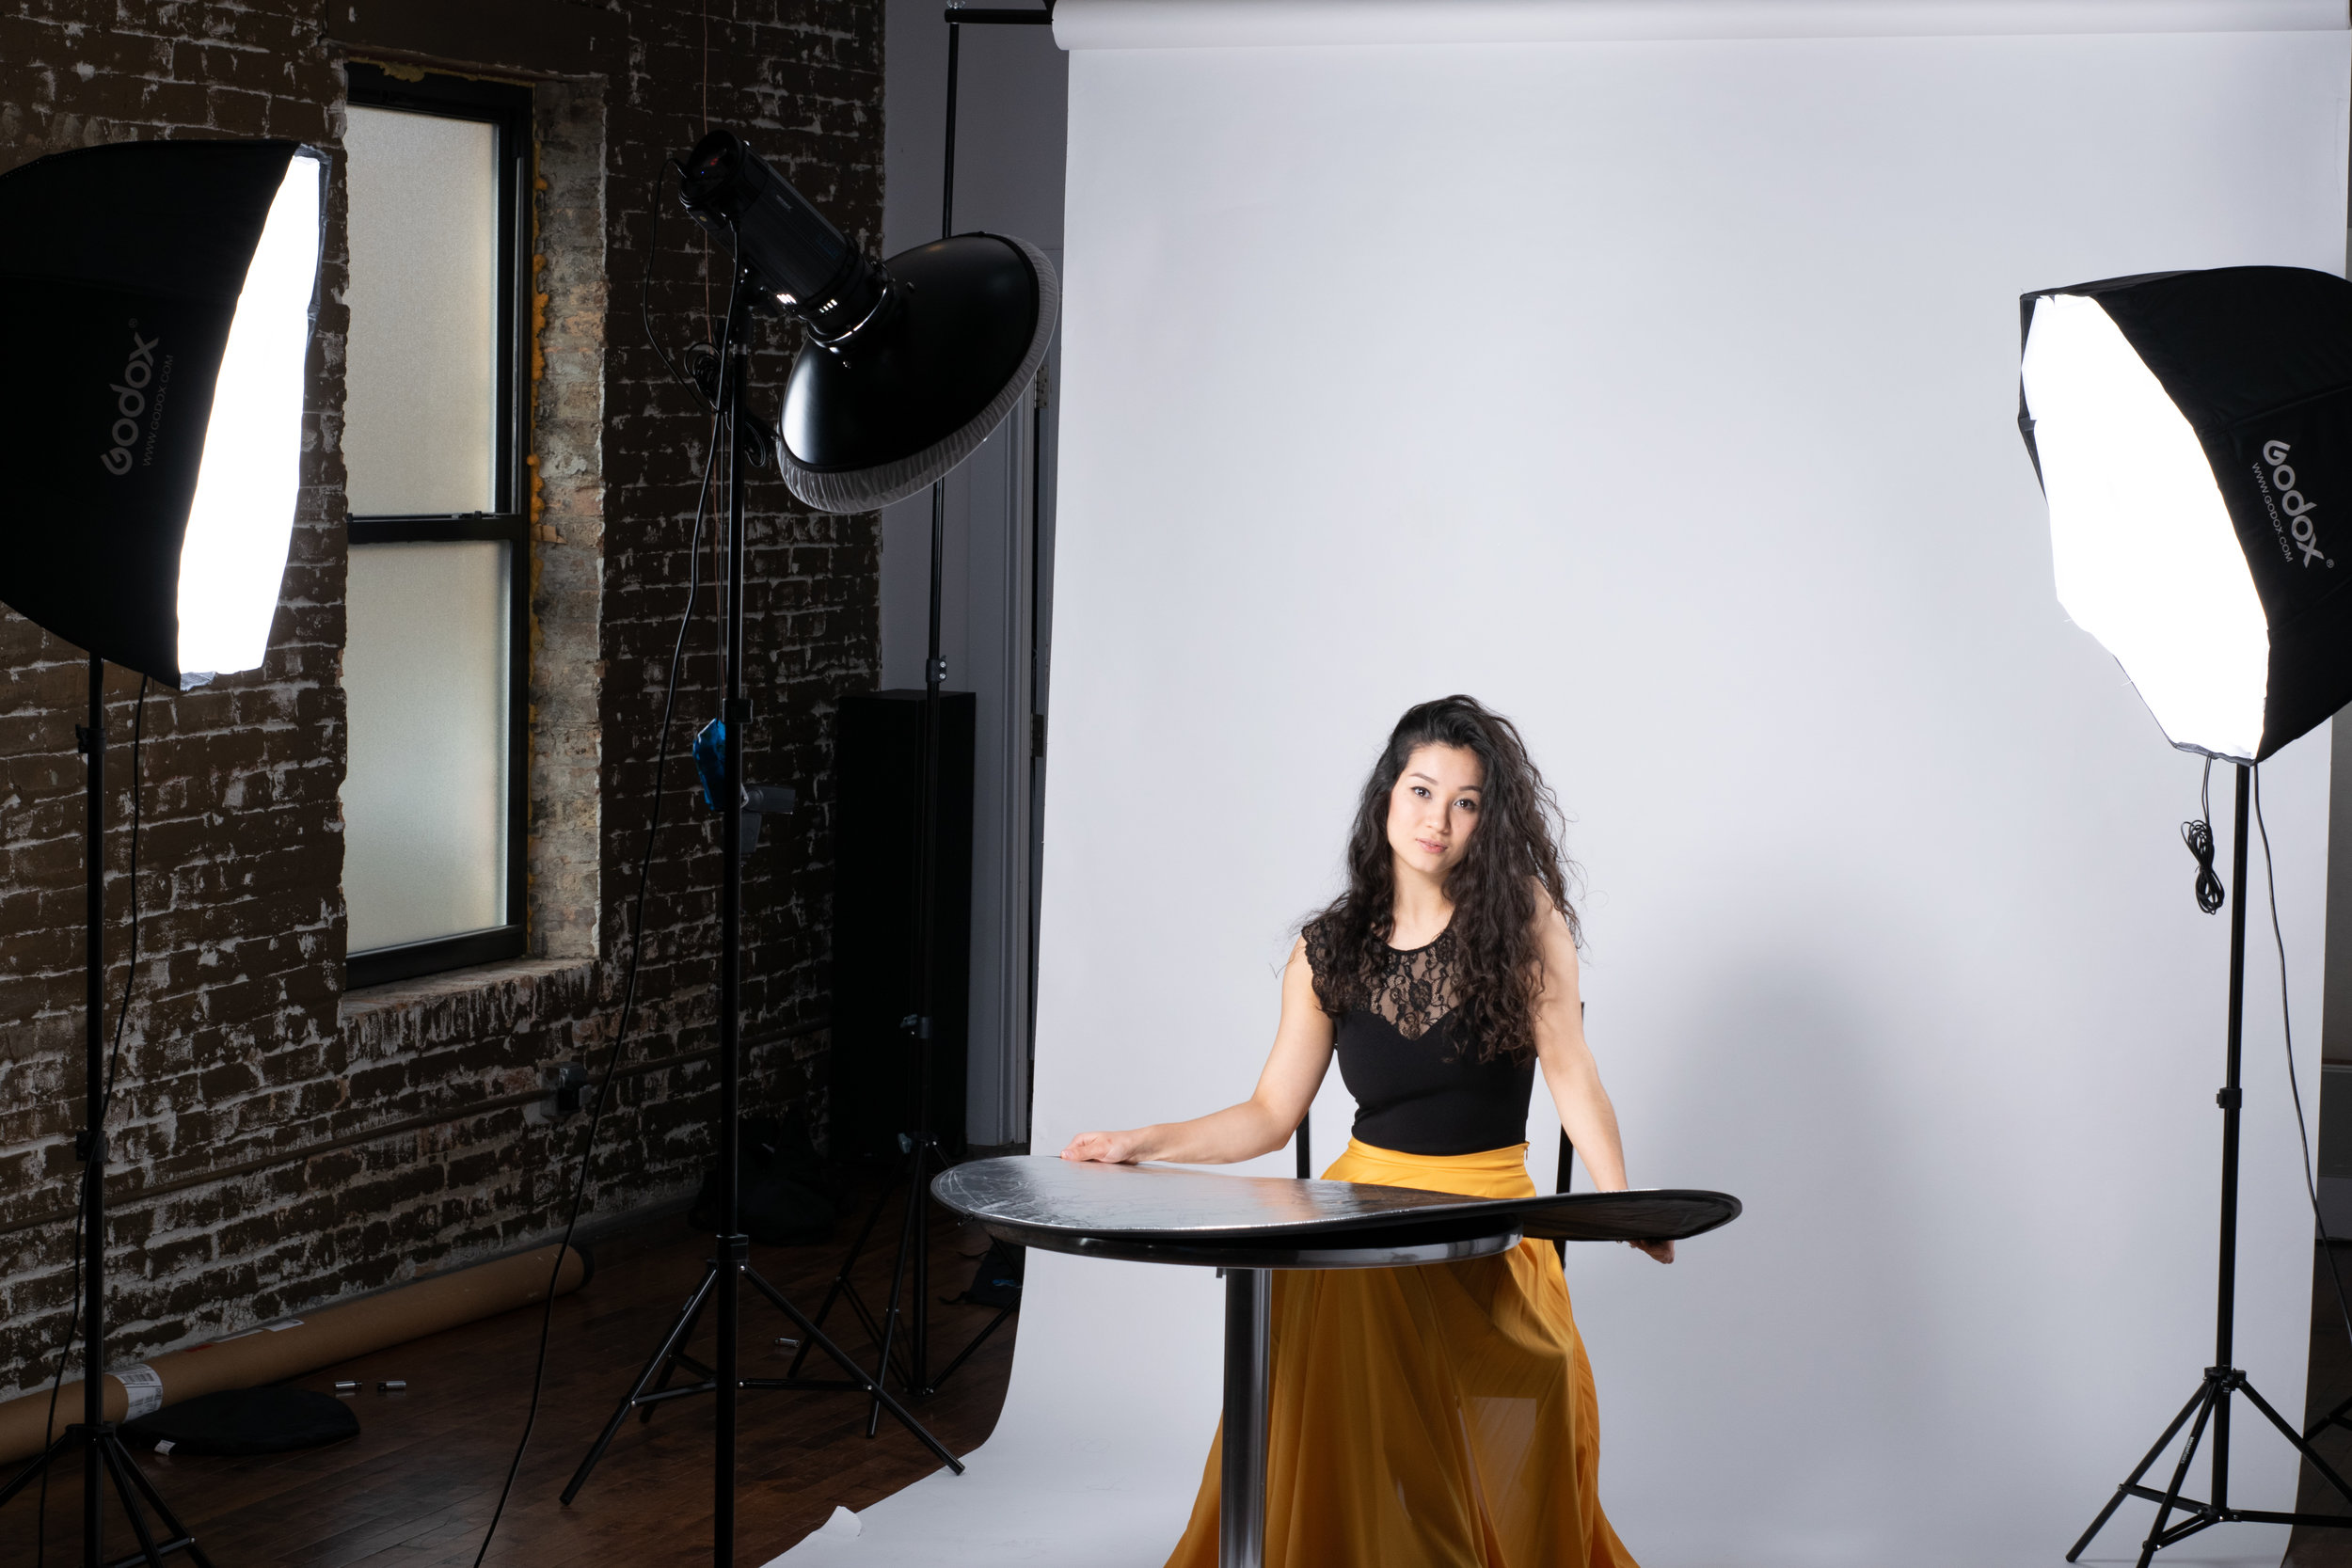 We offer professional photography services and photo studio rental space. -